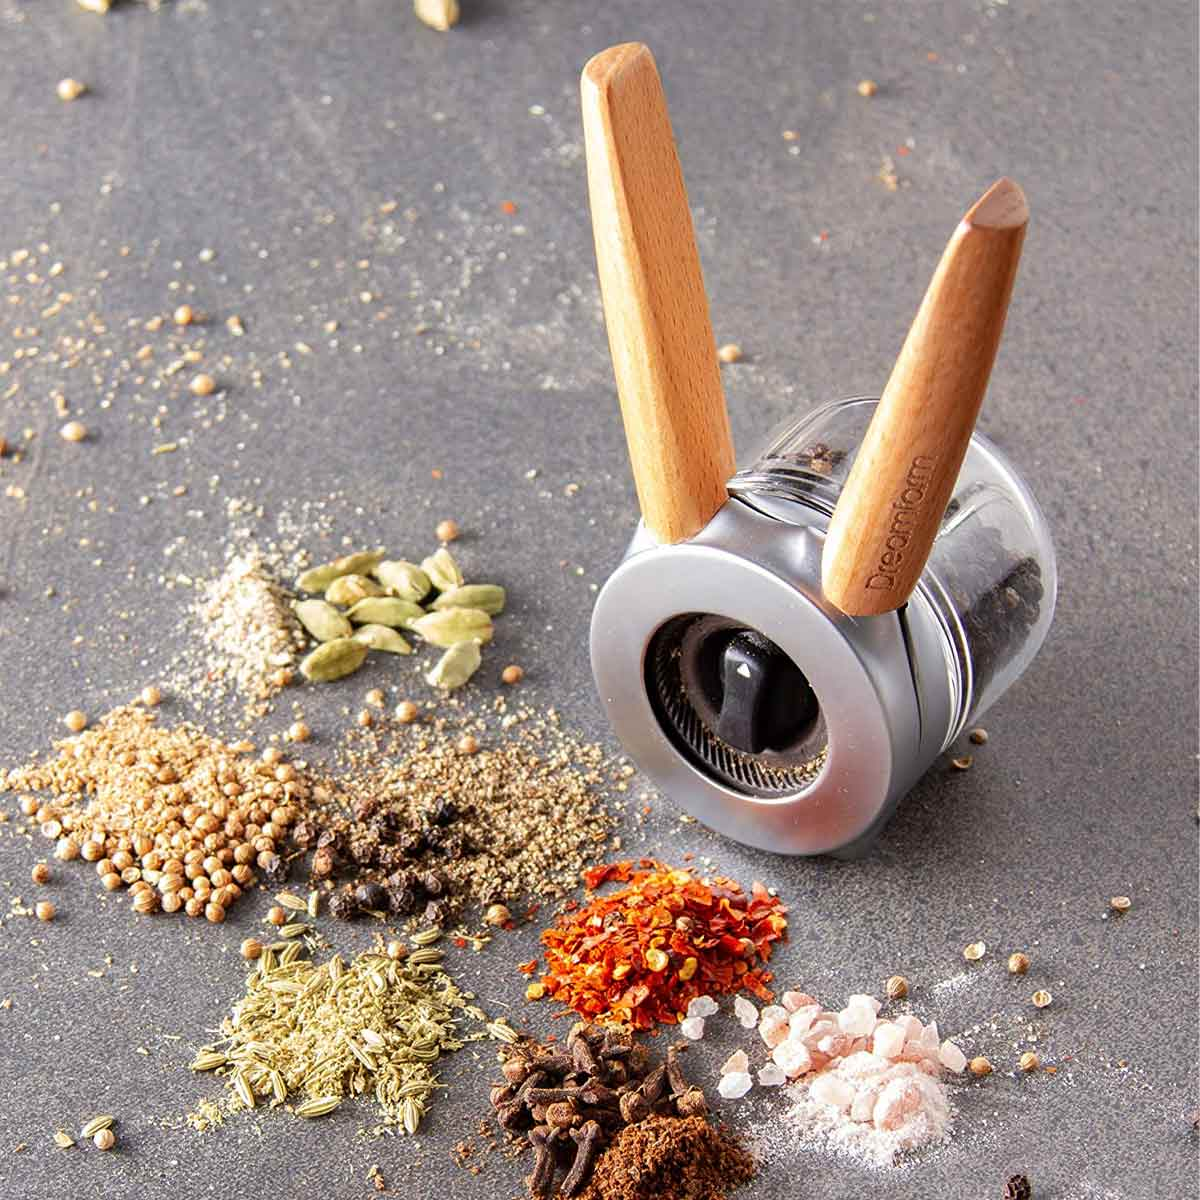 Dream Ortwo Spice Grinder surrounded on table by loose spices.